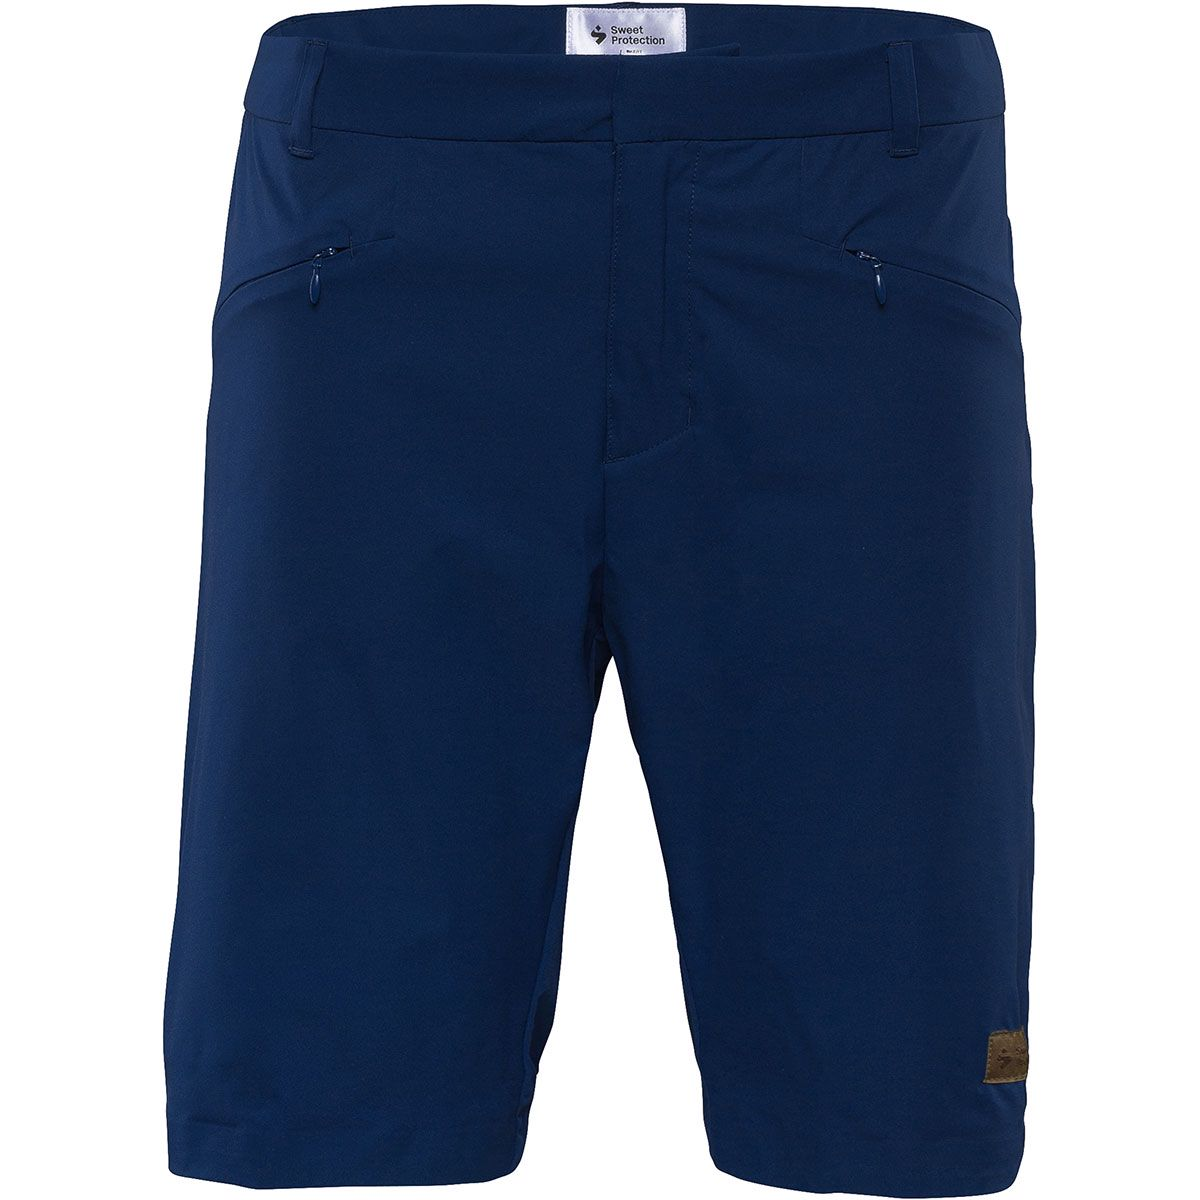 Sweet Protection shorts